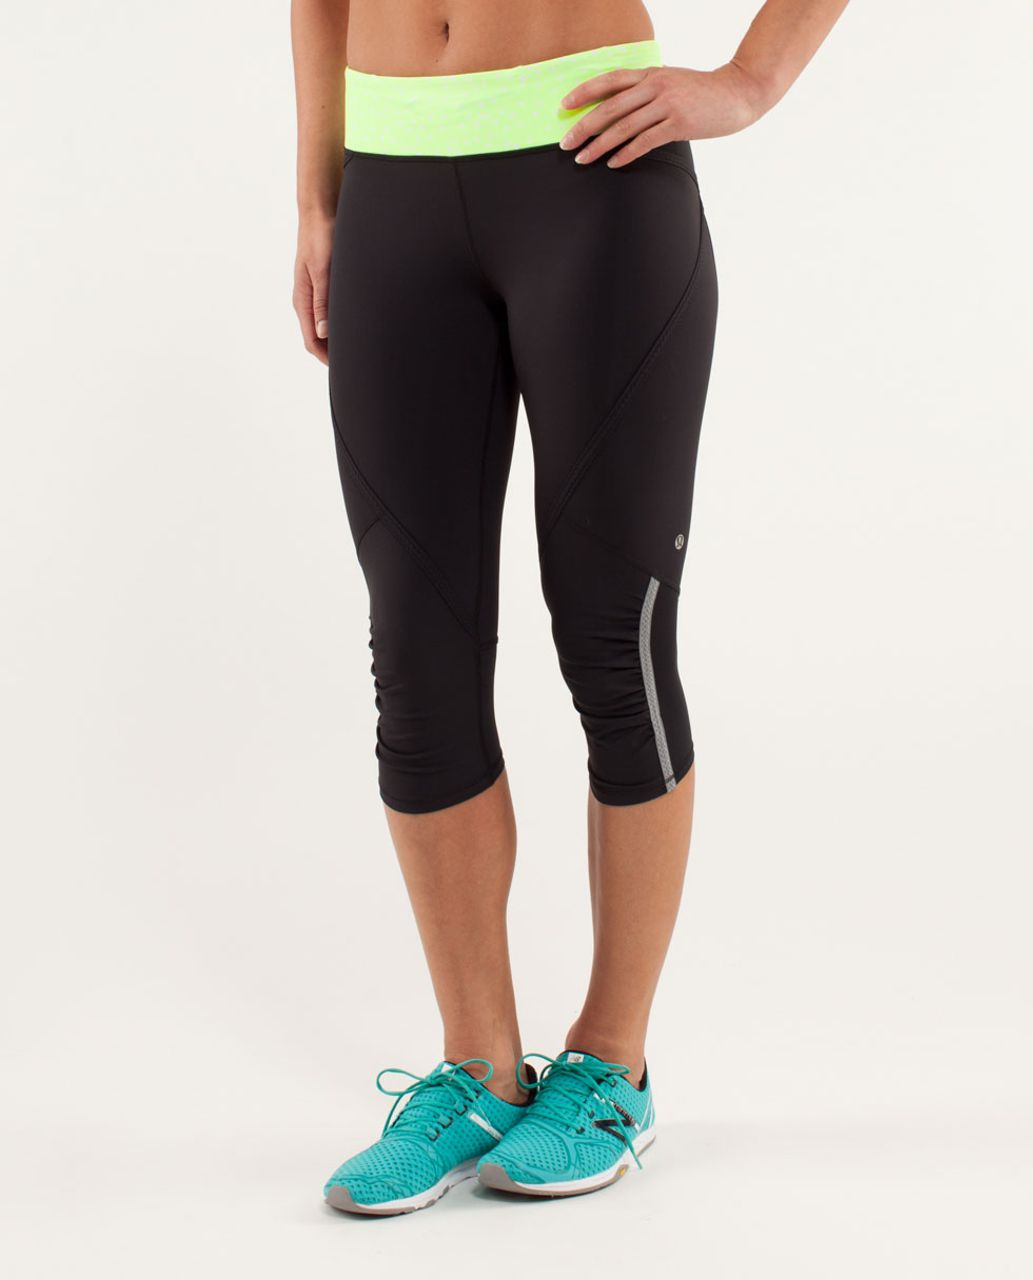 Lululemon Run:  Pace Crop - Black / Petit Dot Faded Zap / Faded Zap